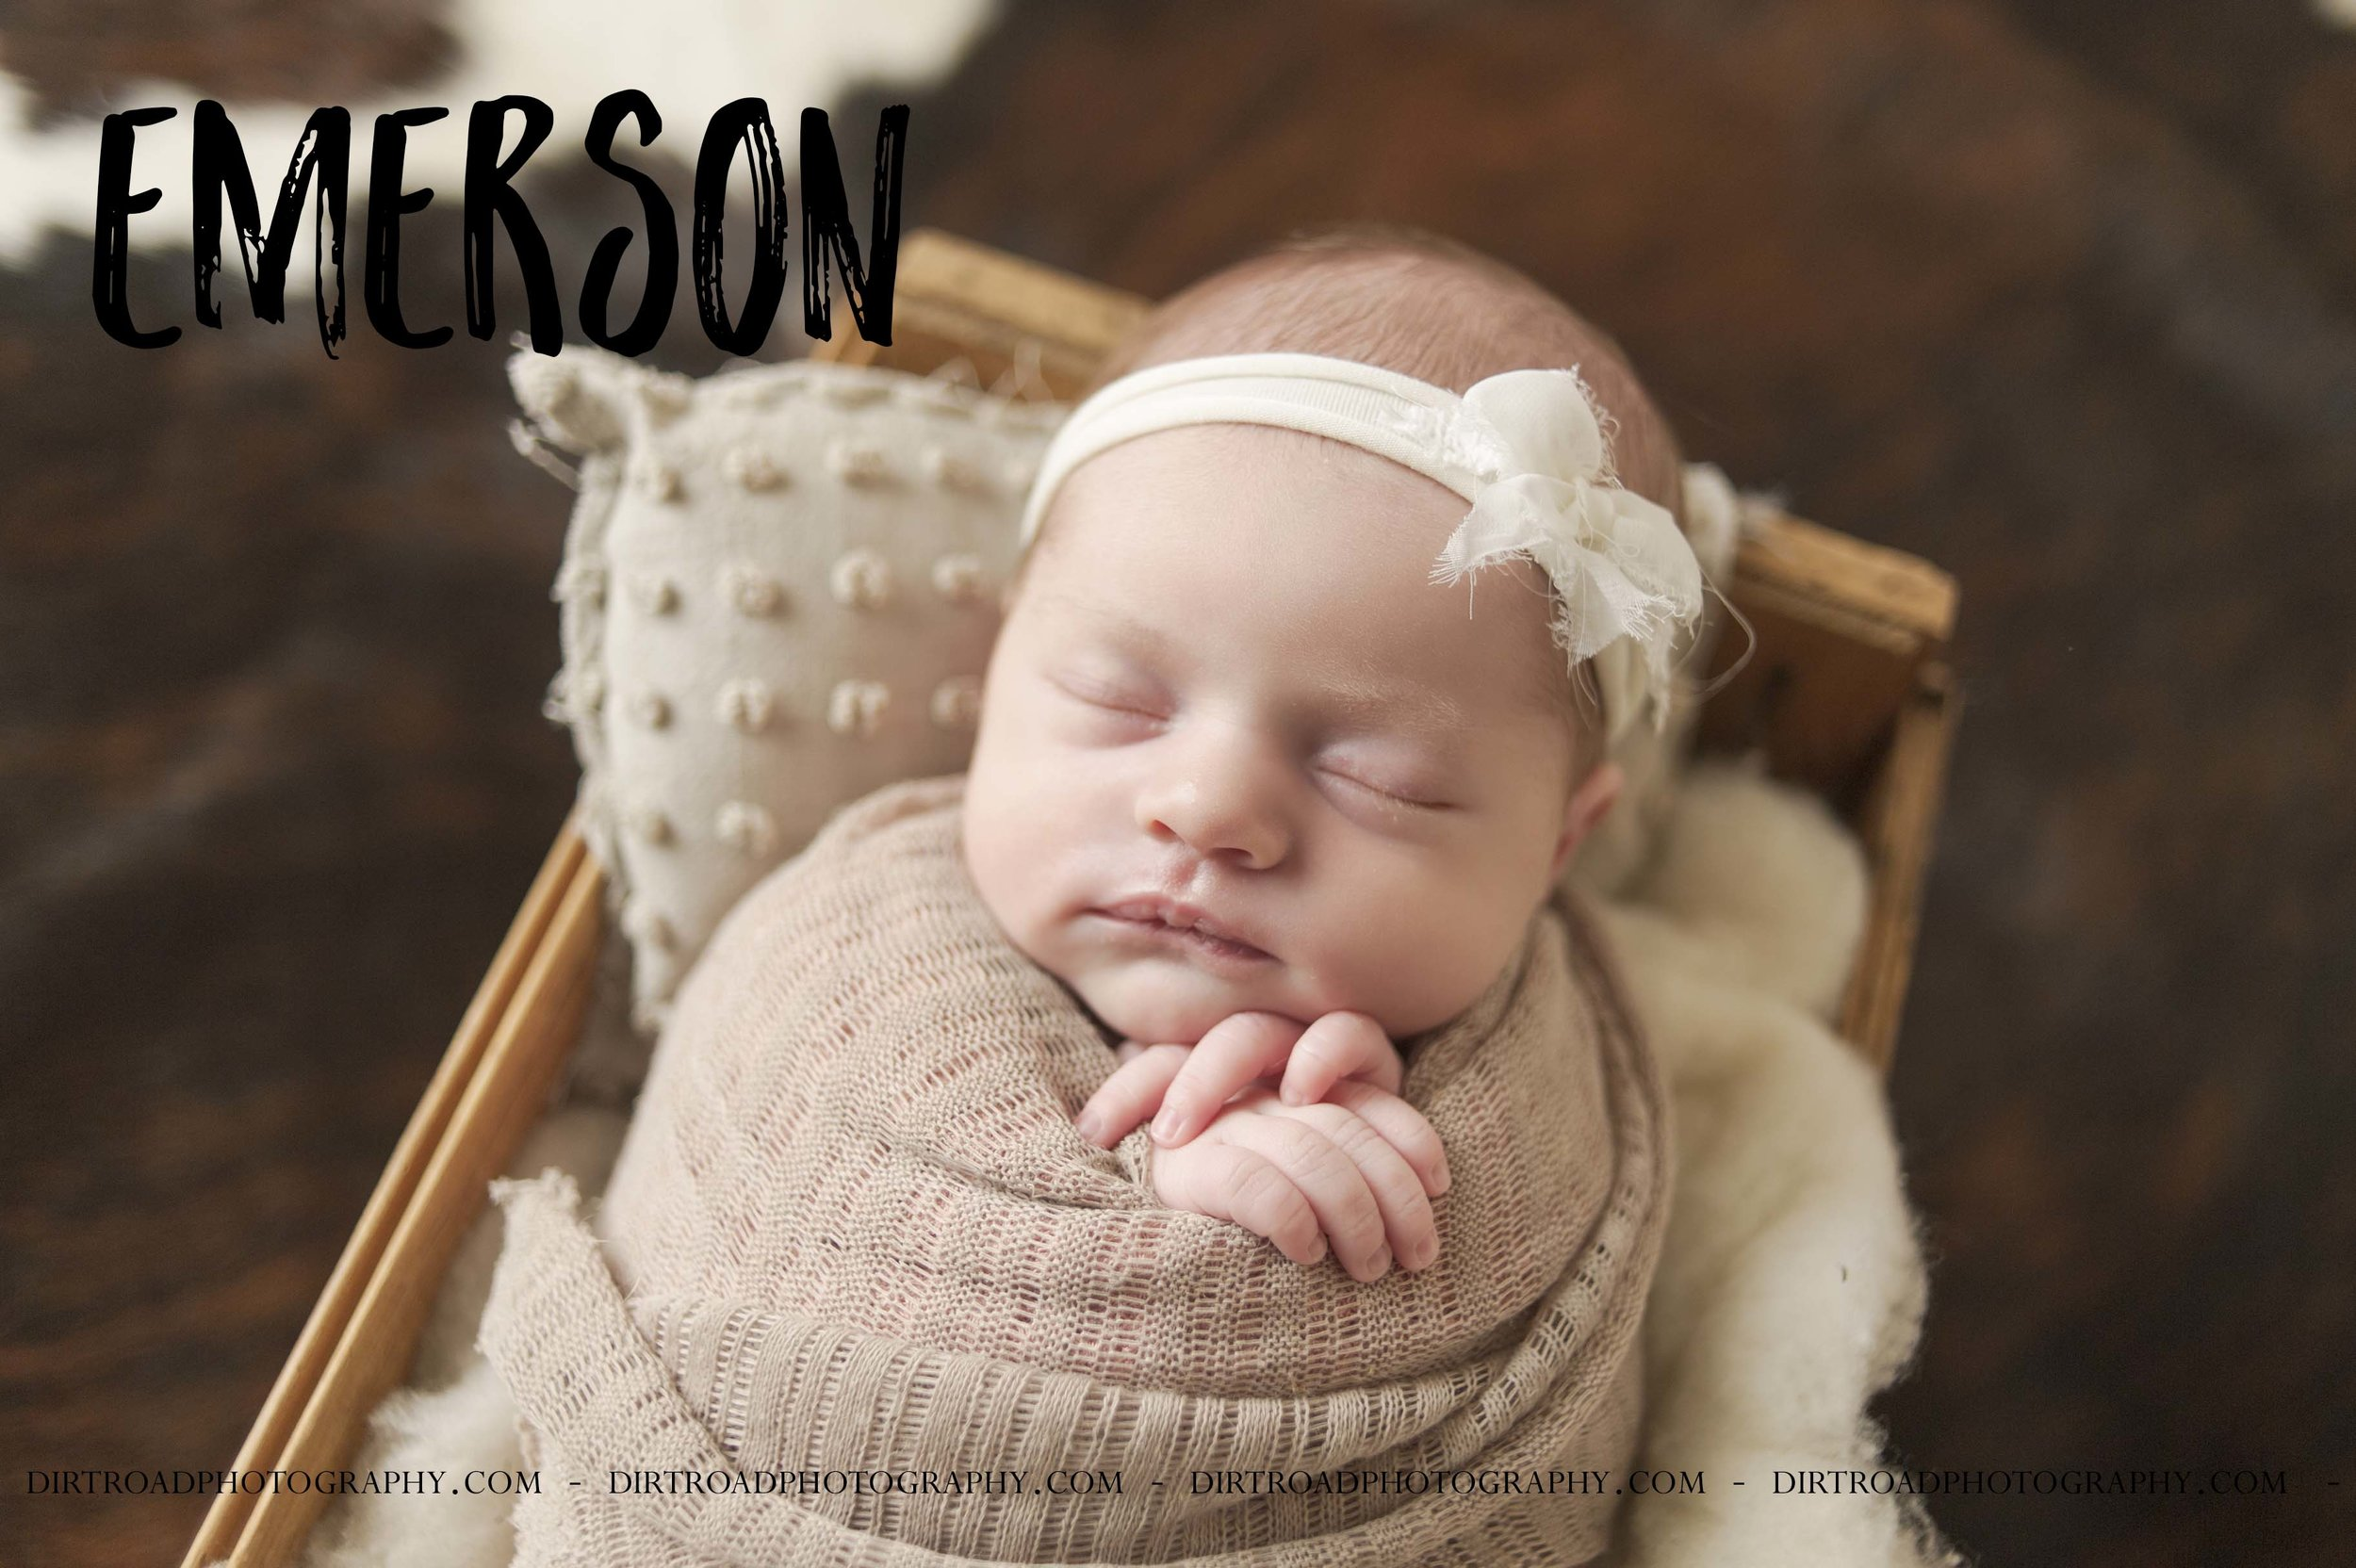 Nebraska newborn photography newborn photo session nebraska photographer dirt road photography high school senior portraits family photographer